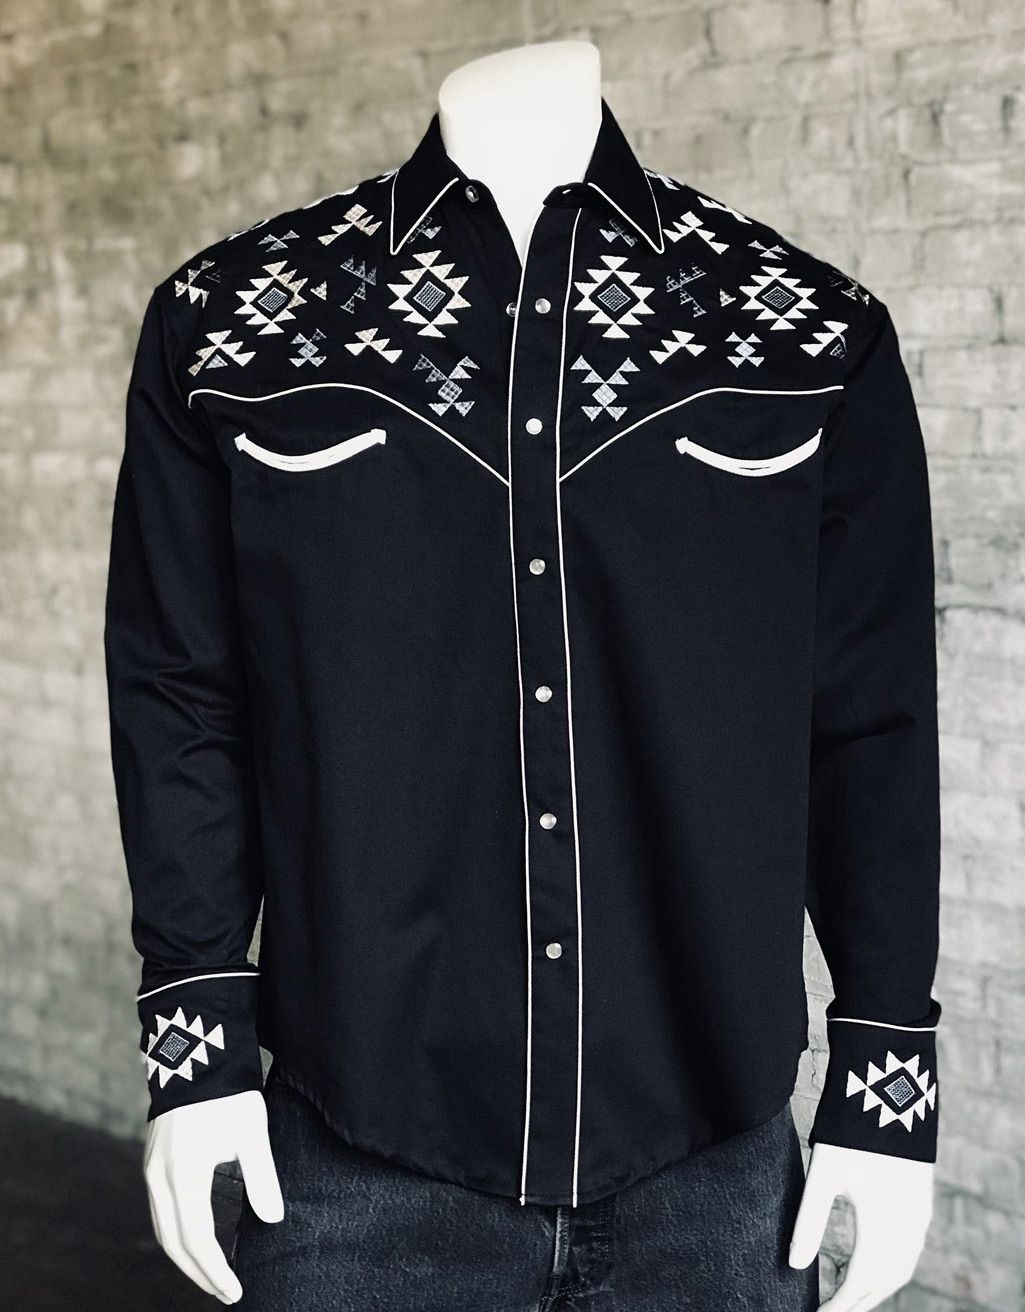 Rockmount Men's Long Sleeve Embroidered Snap Shirt - Black (Closeout)